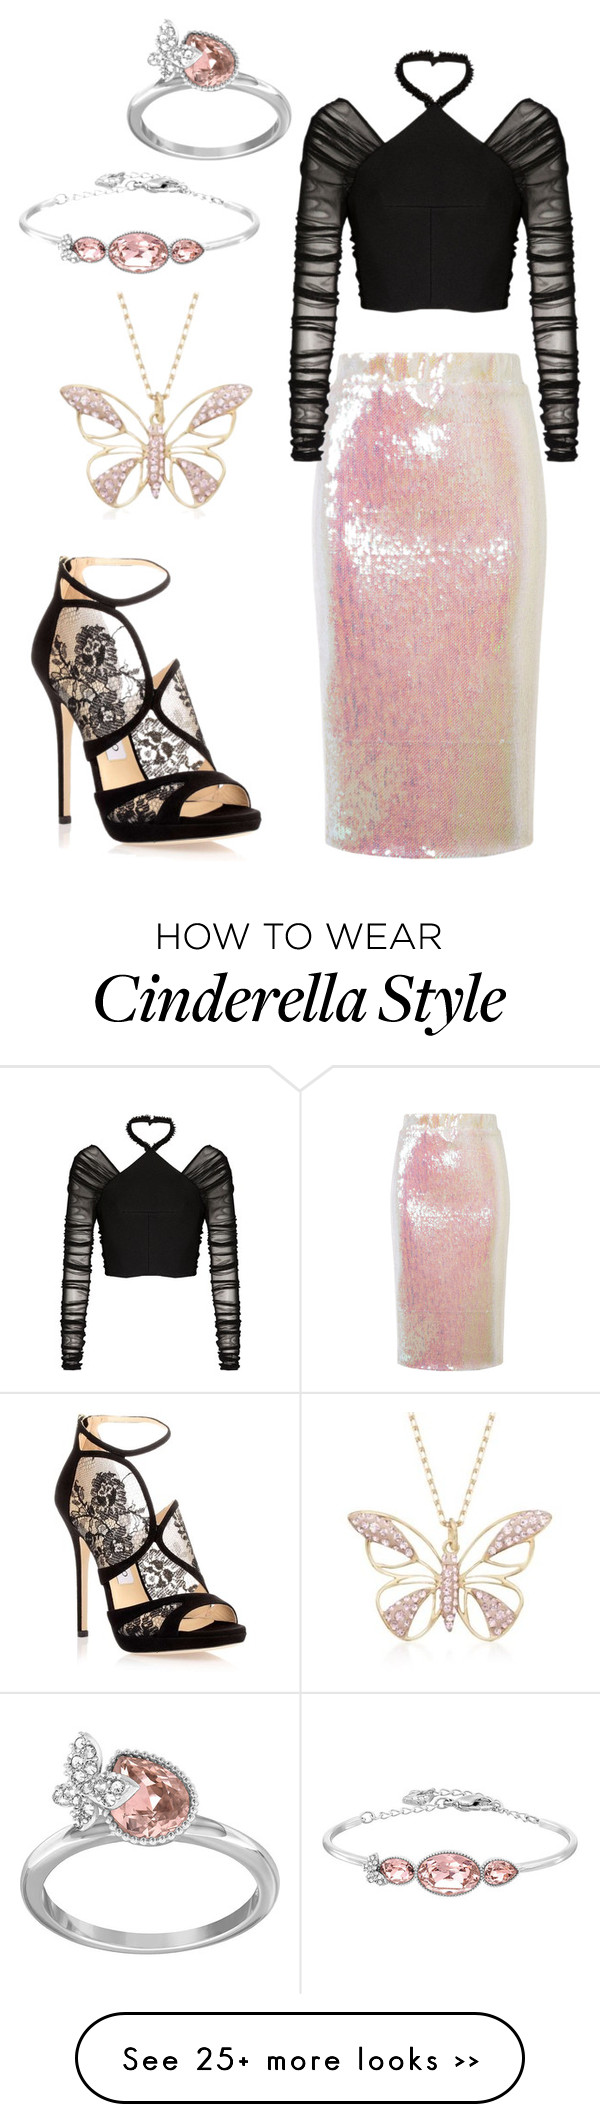 """Sparkly butterflies"" by cassie-poulsen on Polyvore featuring Essentiel, Balenciaga, Jimmy Choo and Swarovski"